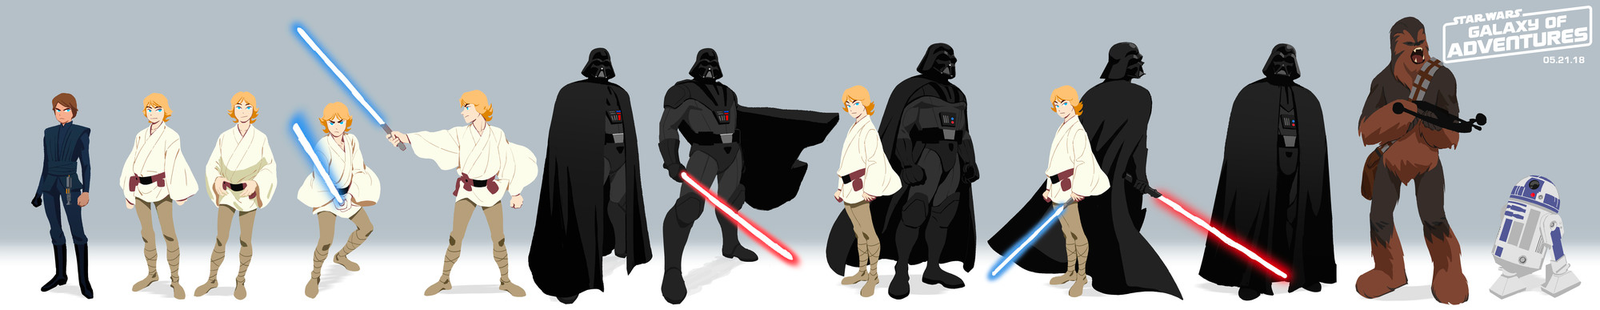 Lineup art of Darth Vader, Luke, Chewie, and R2.